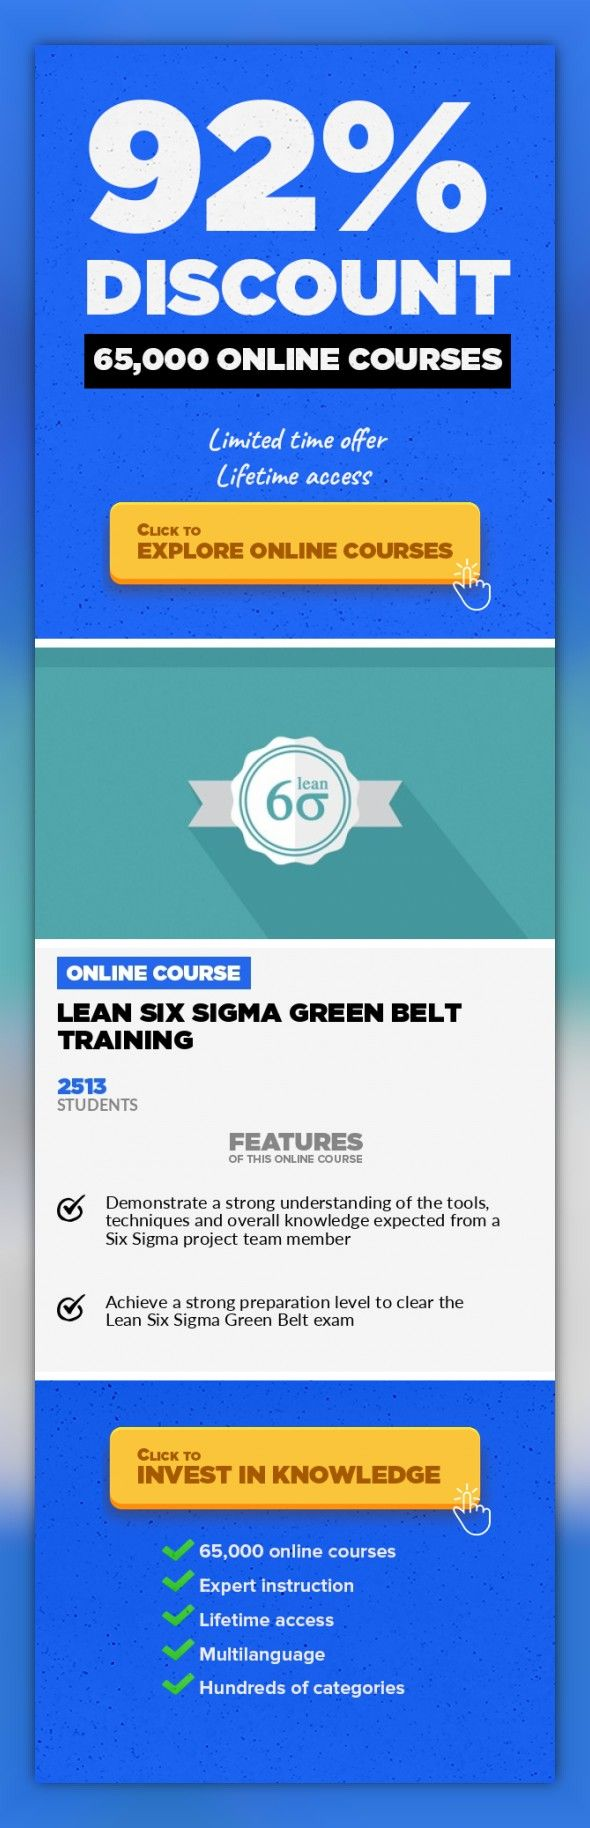 Lean Six Sigma Green Belt Training Operations Business The Best